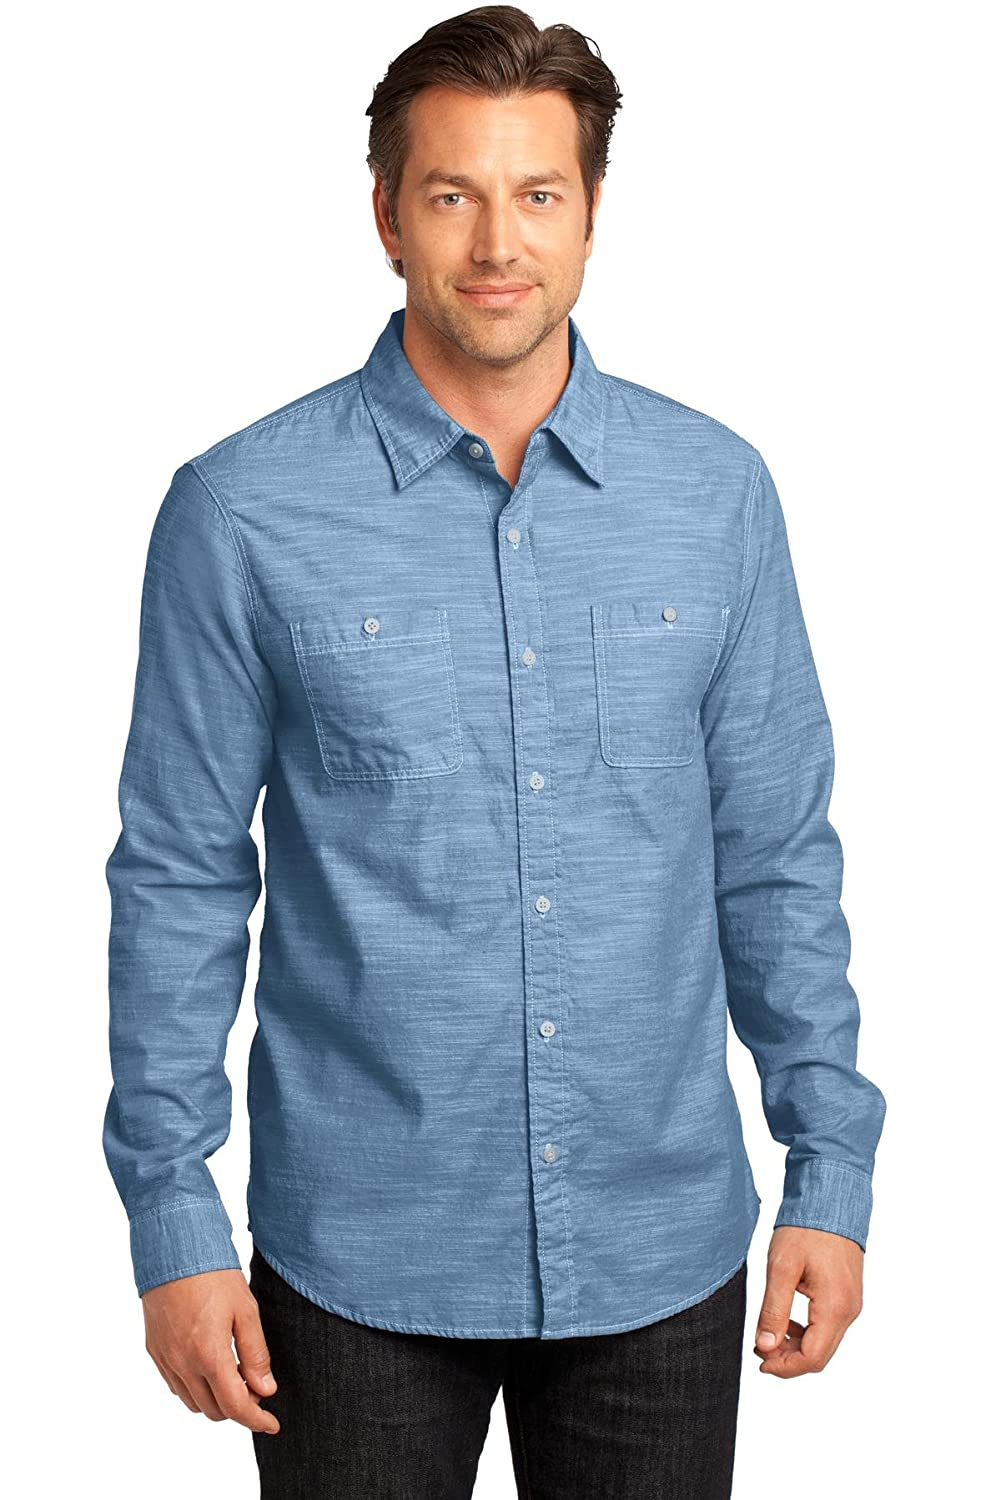 DM3800 Mens Long Sleeve Washed Woven Shirt District Made